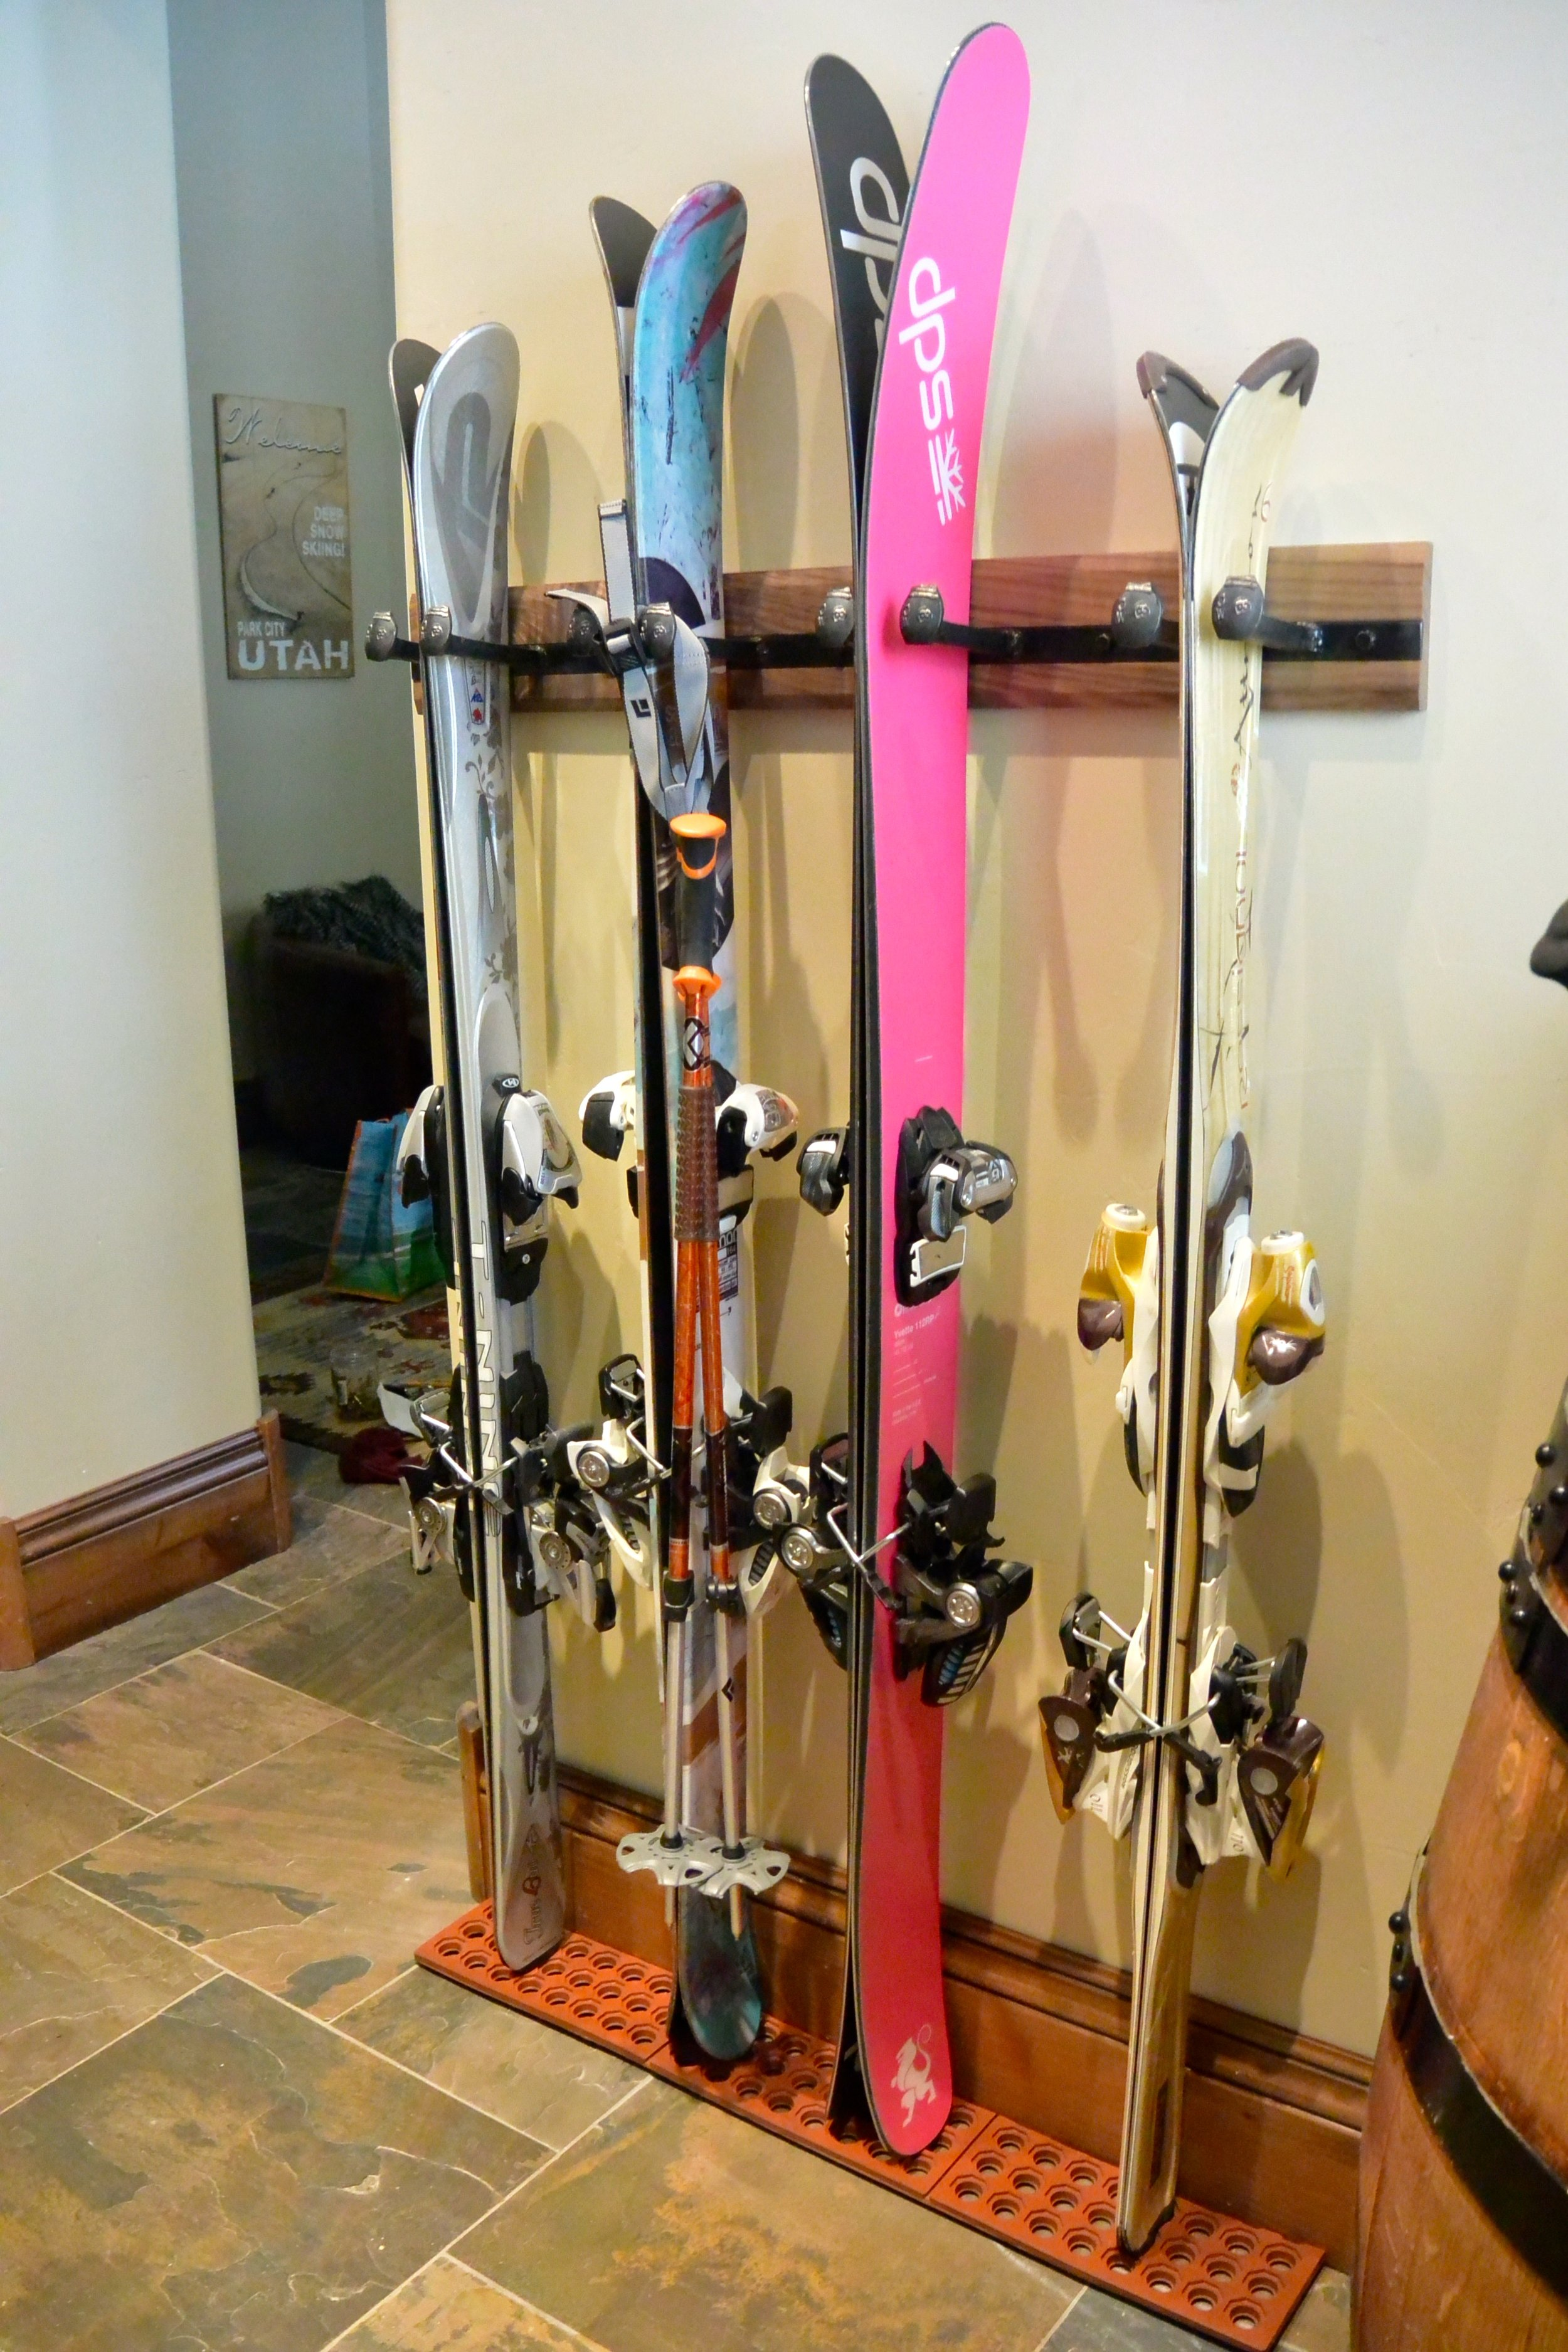 Makes your skis look great and saves room!